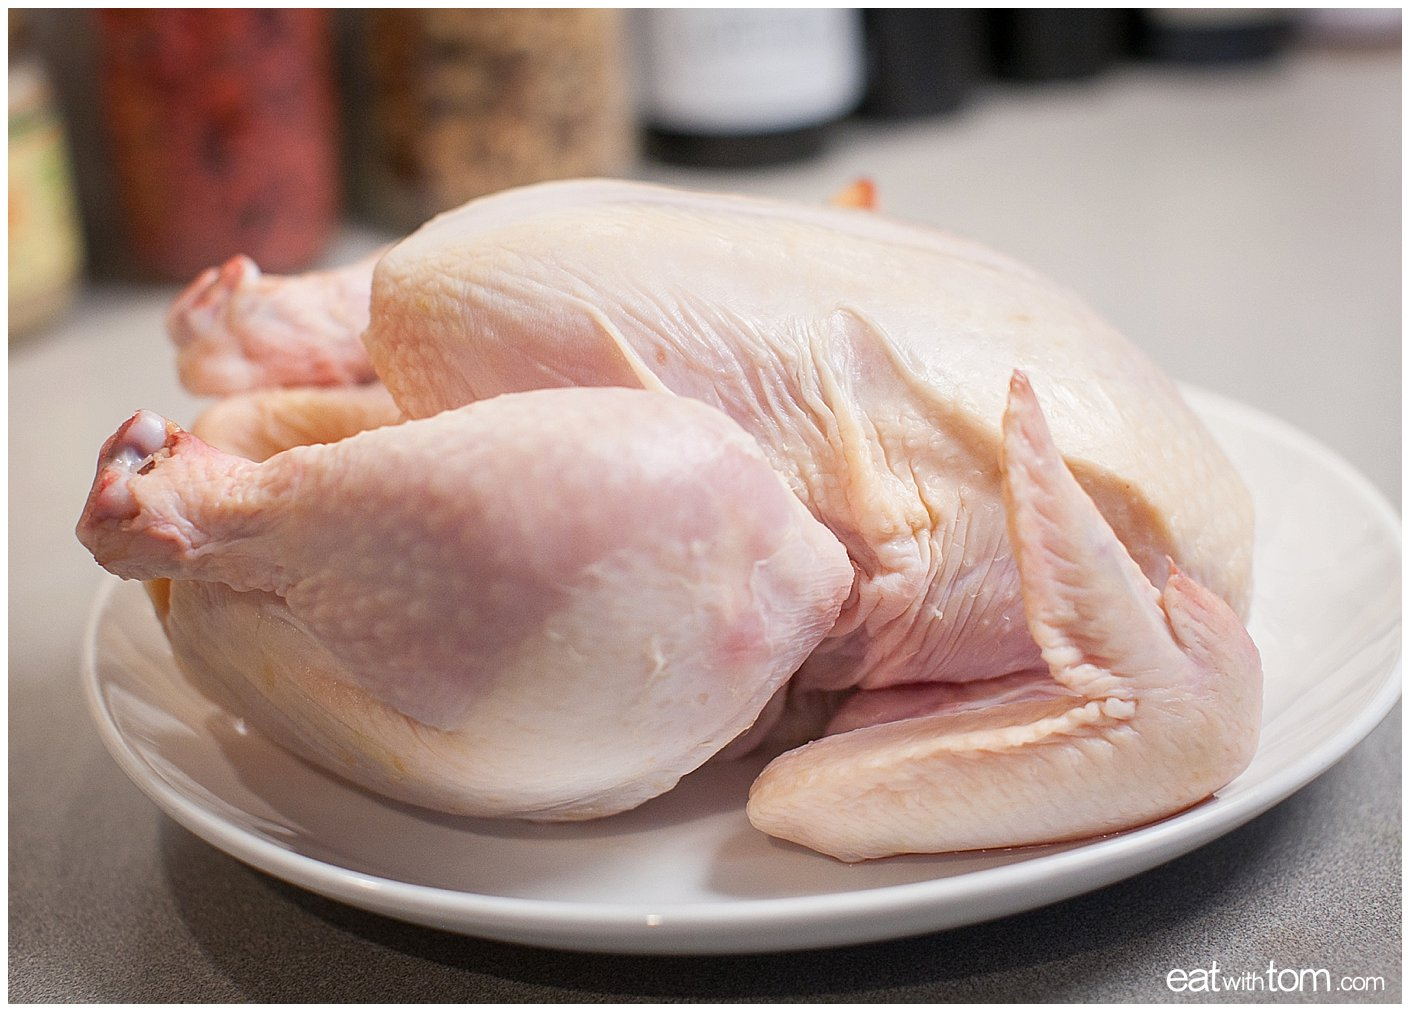 Prepare the raw chicken by wiping it dry